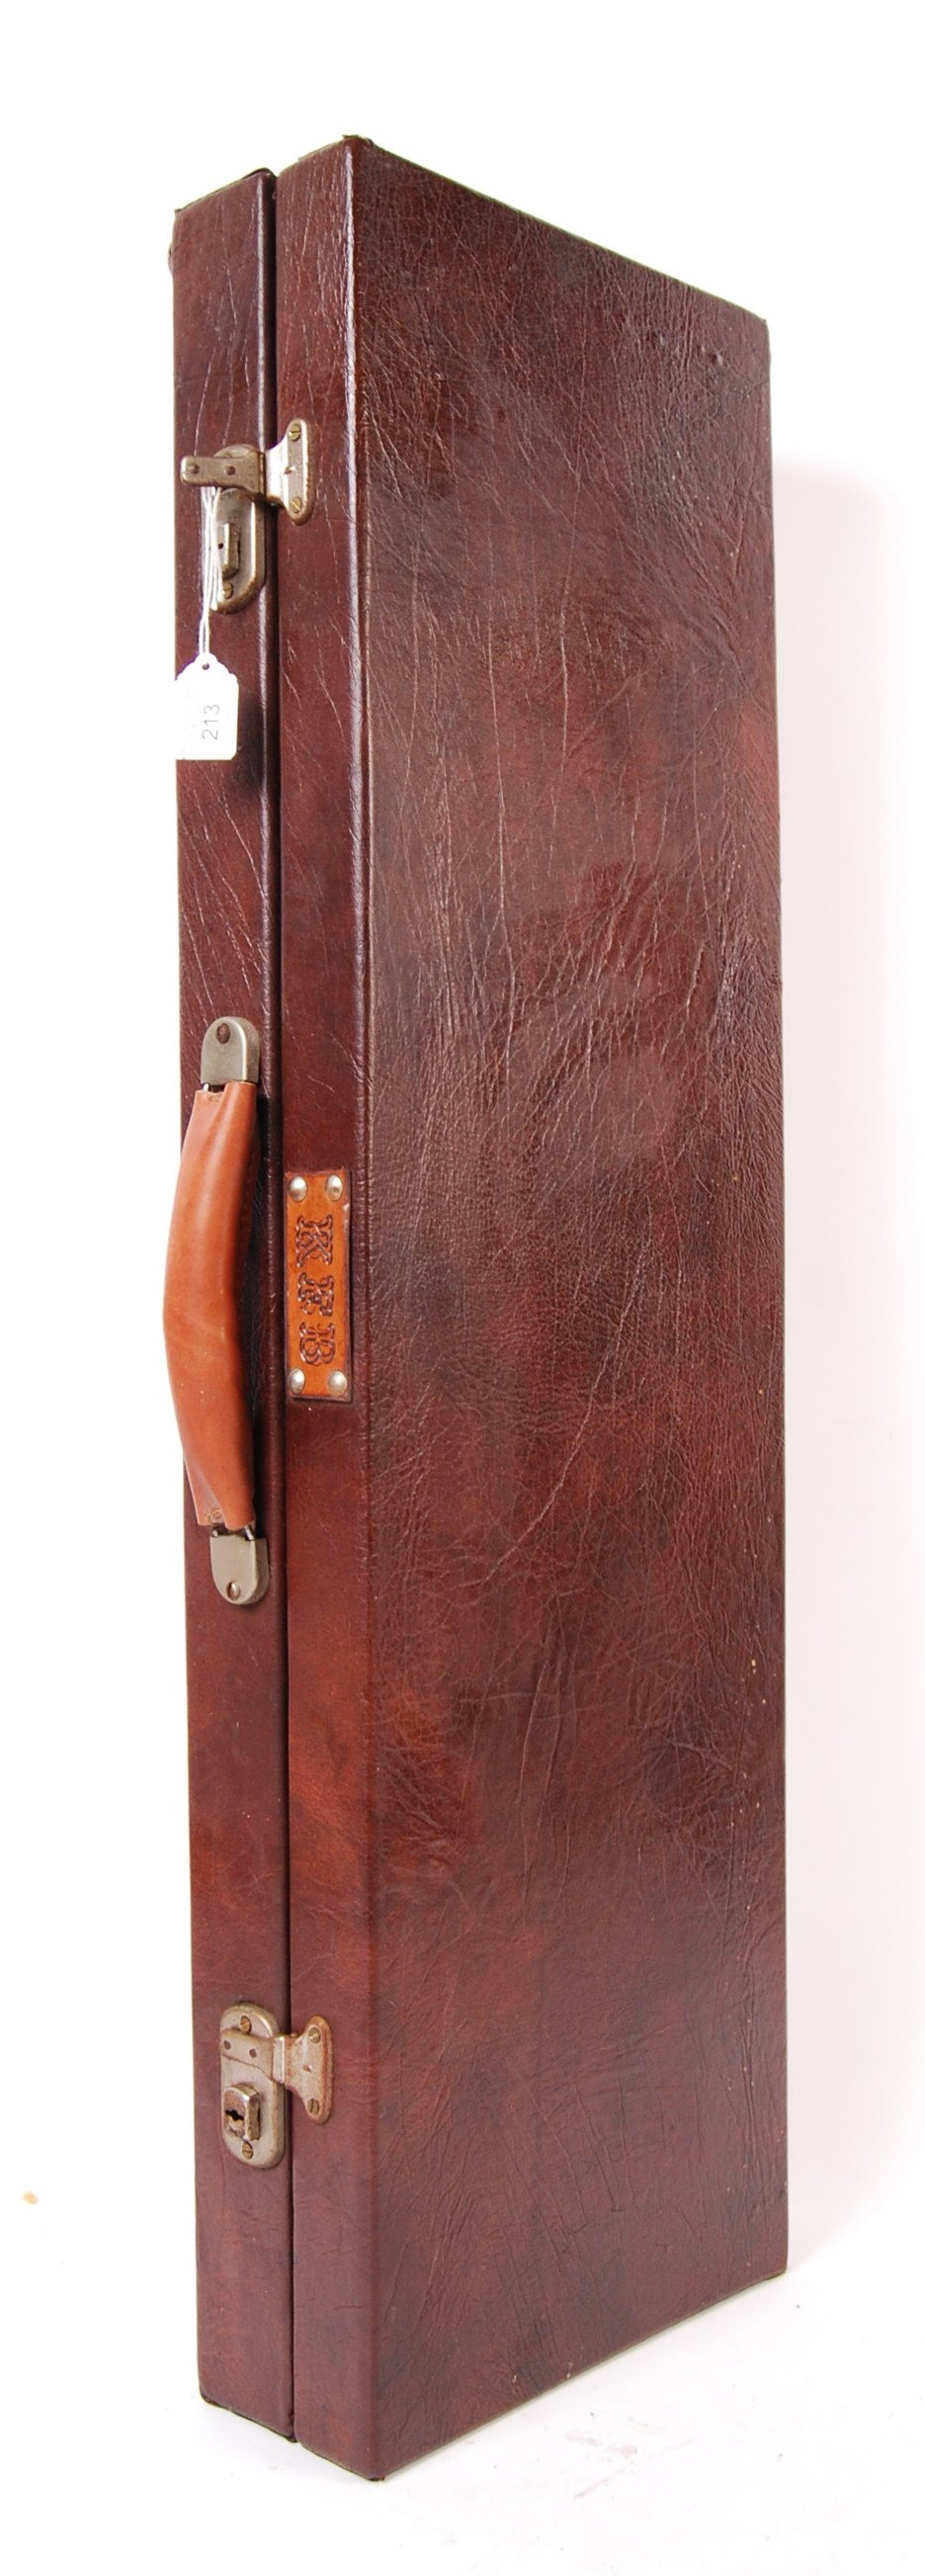 VINTAGE LEATHER SHOTGUN CASE WITH FITTED INTERIOR